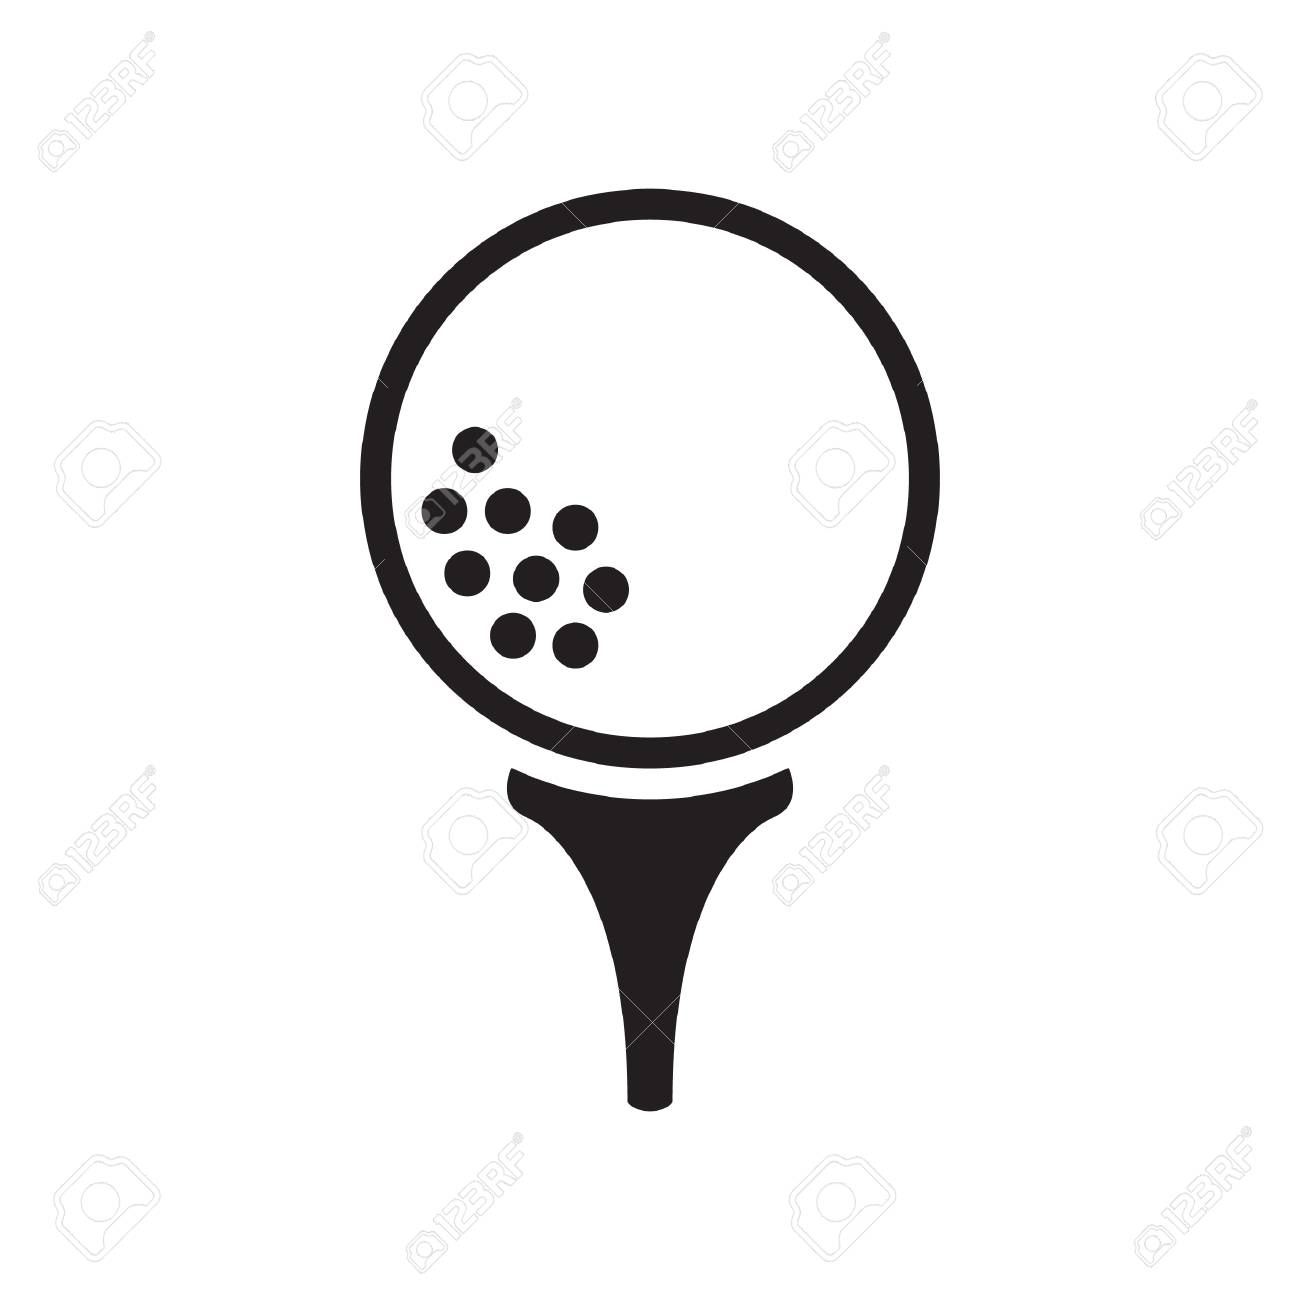 Golf Ball On Tee Royalty Free Cliparts Vectors And Stock Illustration Image 53678130